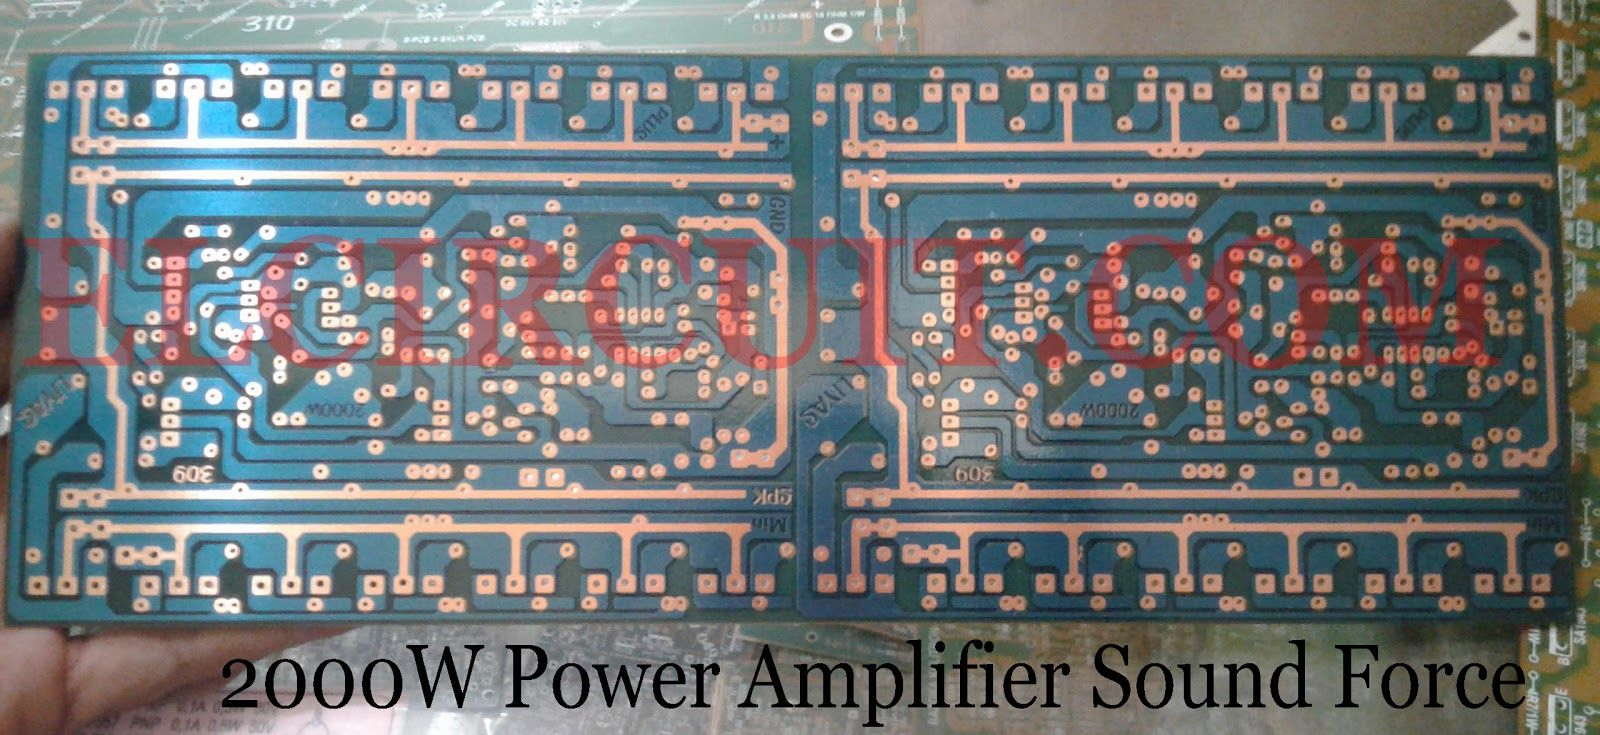 2000w Audio Amplifier Circuit Diagrams - Wiring Diagrams Reset